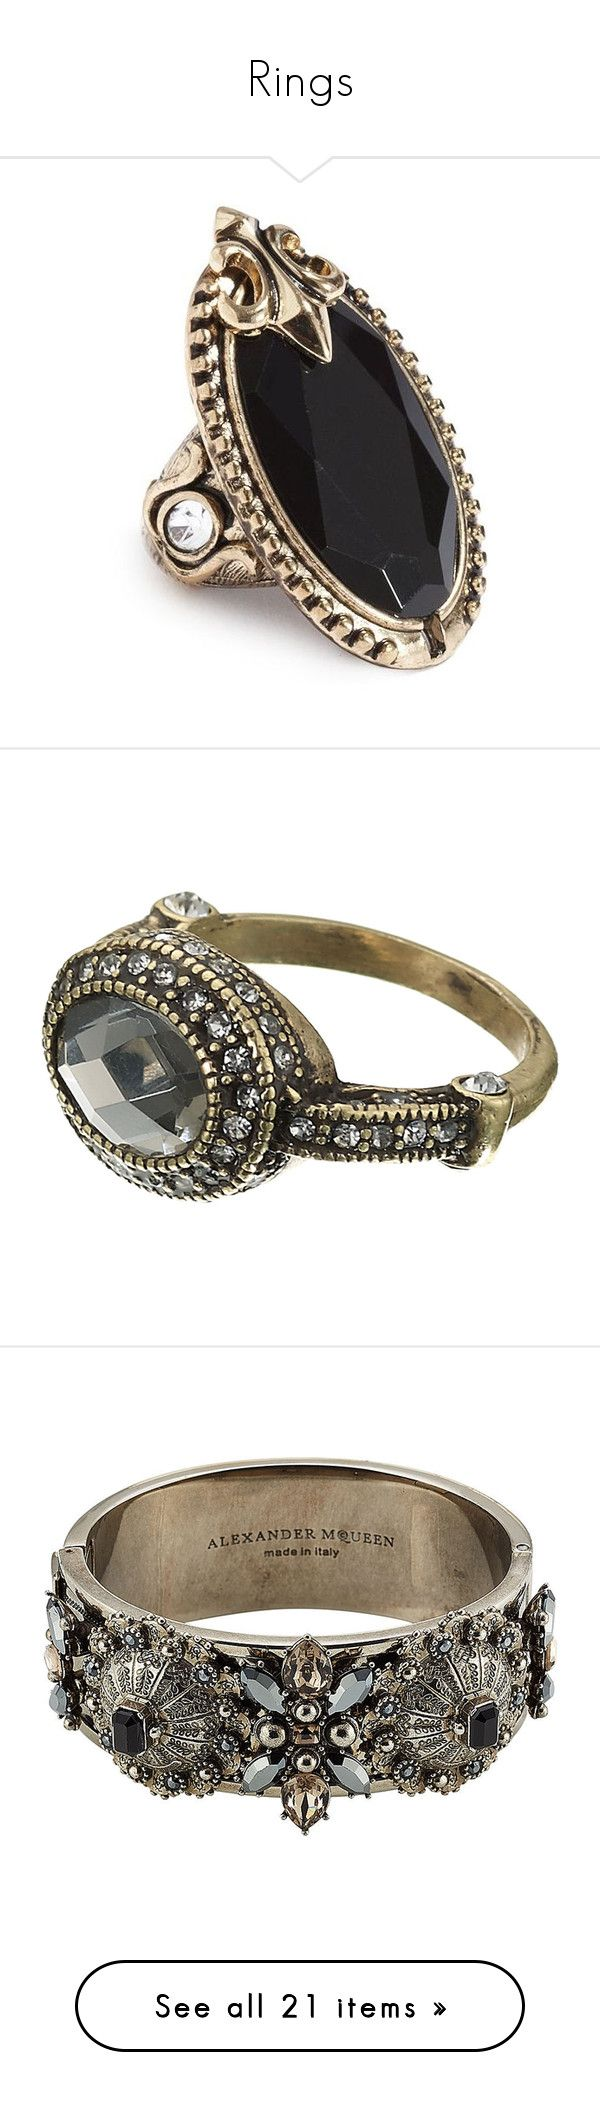 """Rings"" by kitkat12287 ❤ liked on Polyvore featuring jewelry, rings, accessories, aneis, anillos, gold, band jewelry, stretch cocktail rings, vintage style rings and sports rings"